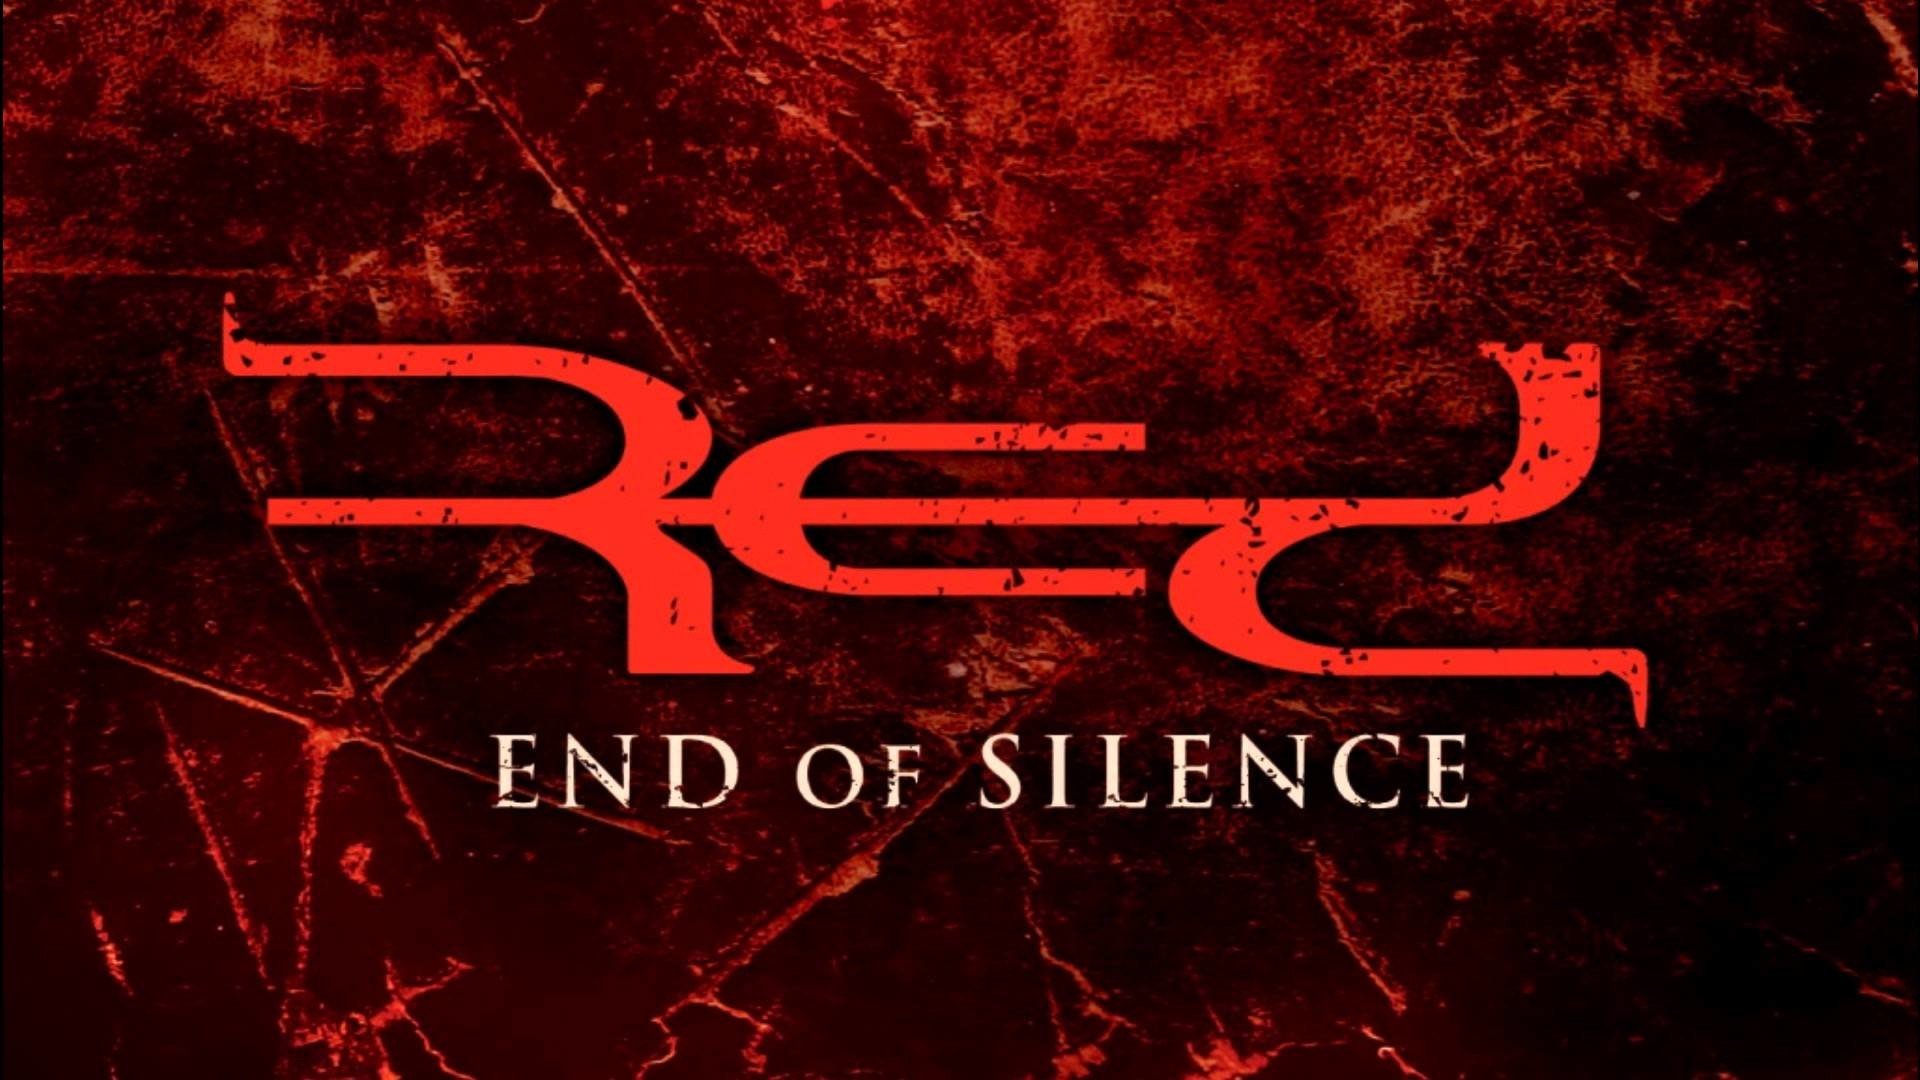 RED (the band) images Red wallpaper HD wallpaper and background